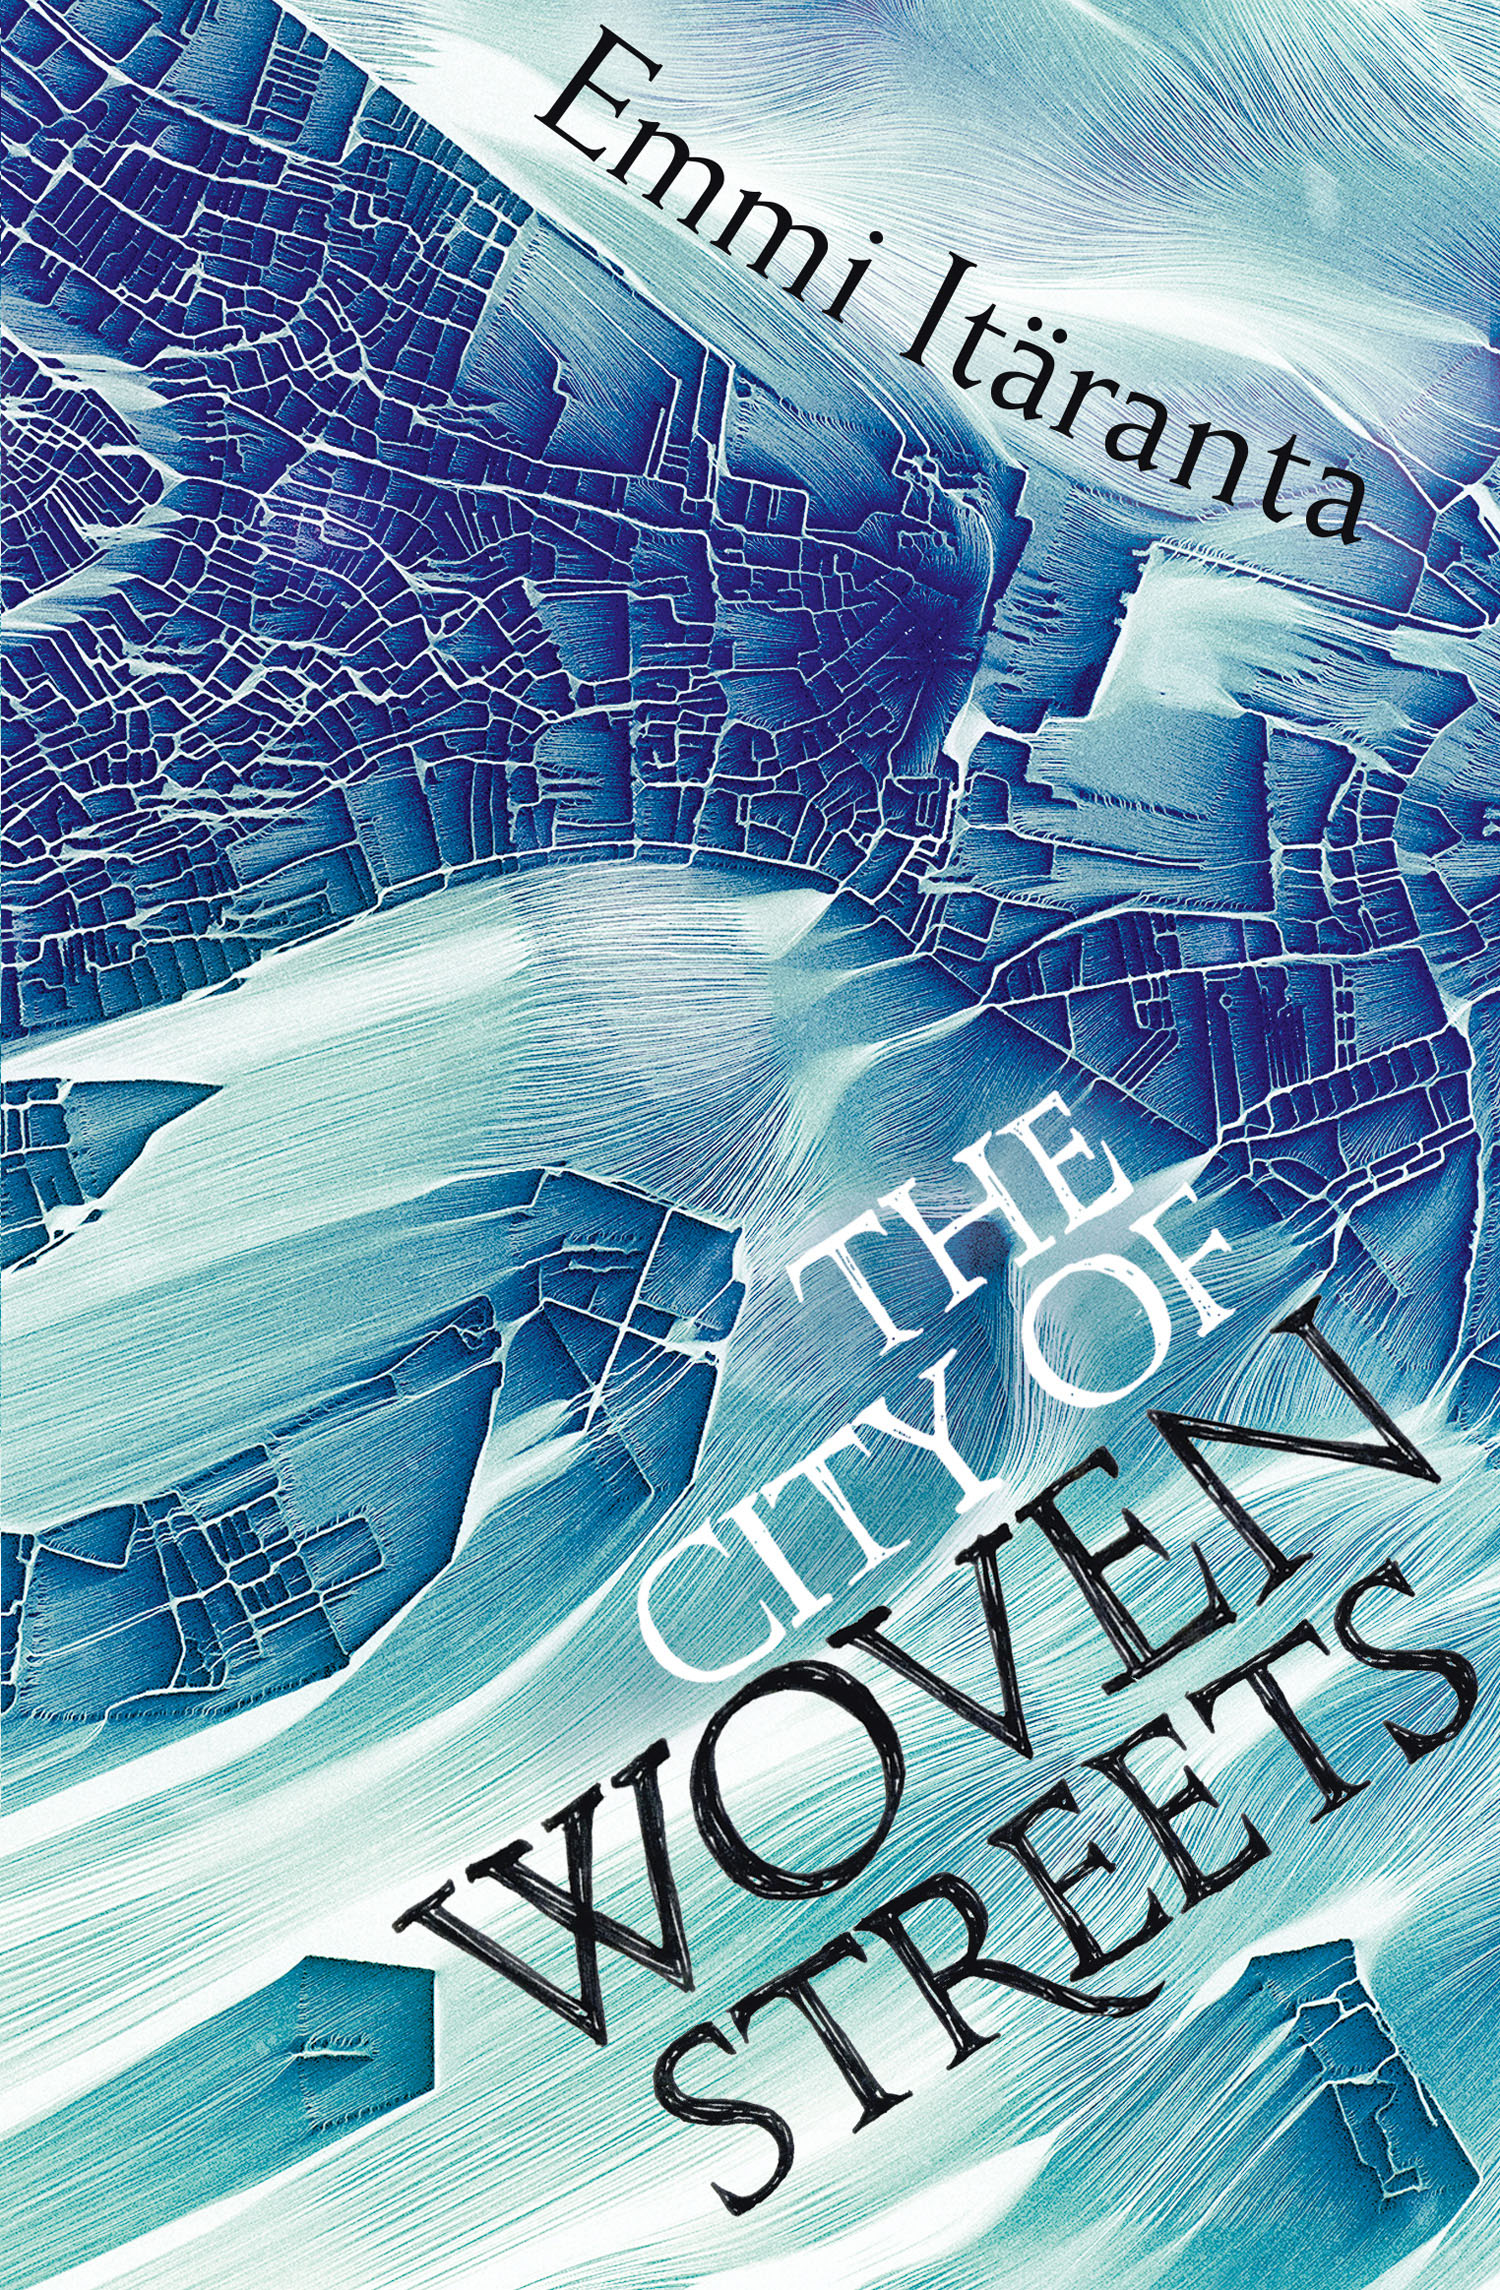 The City of Woven Streets